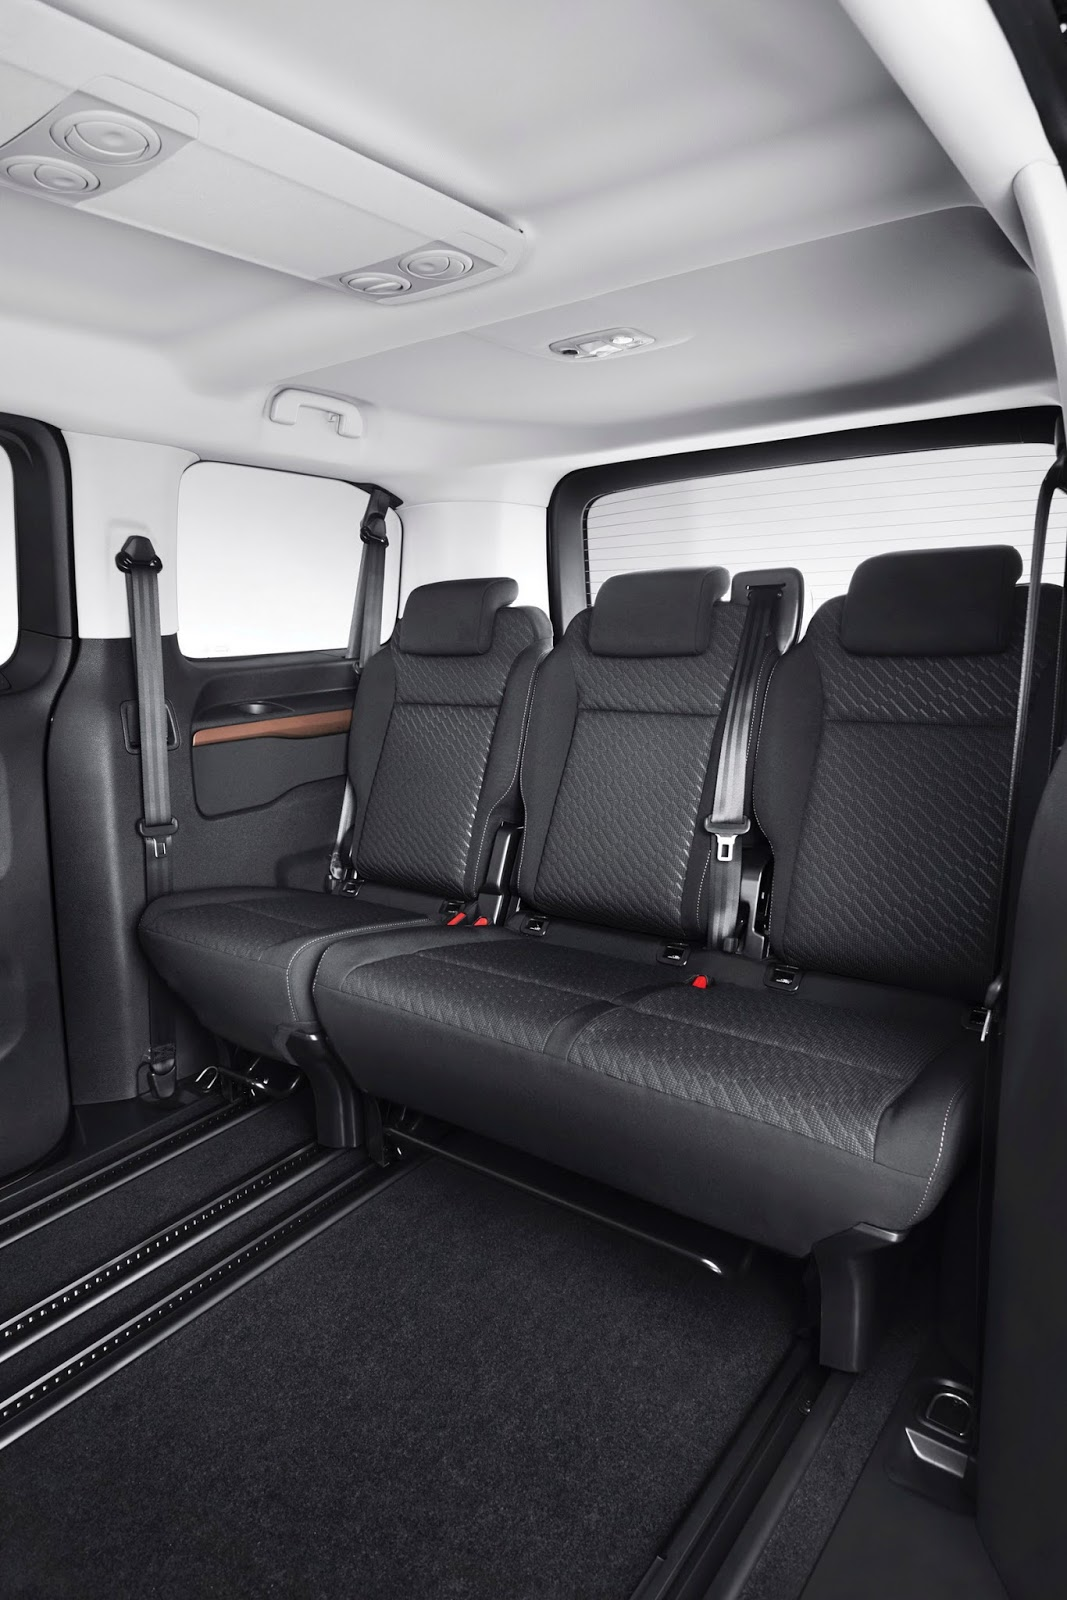 Toyota toyota proace : New Toyota Proace Verso MPV Detailed, Offers Seating For Up To ...